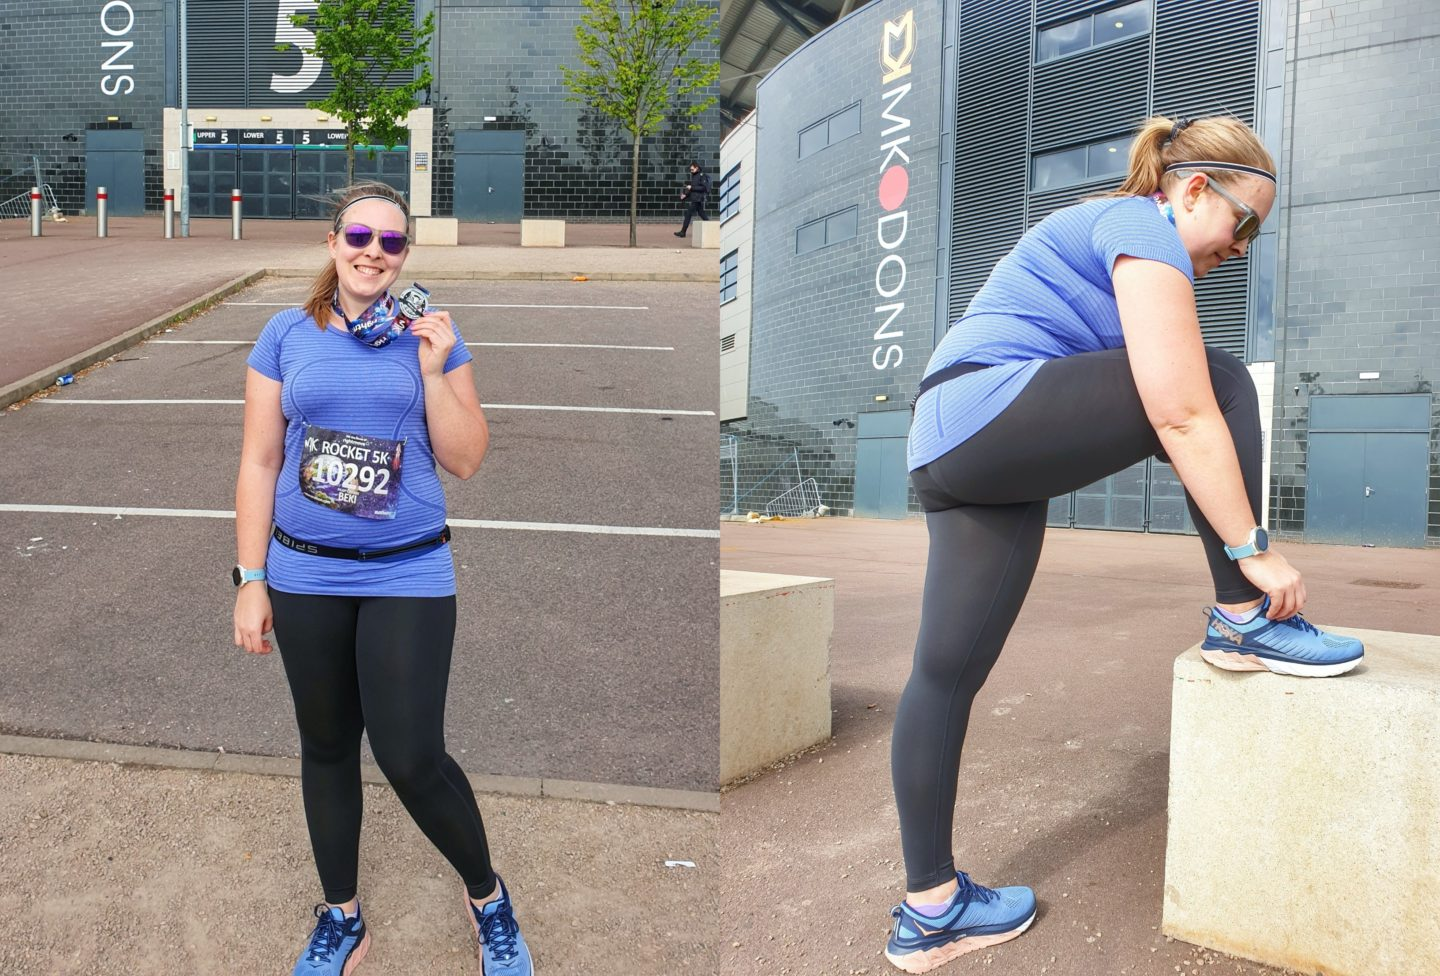 Black running leggings worn at MK Rocket 5k